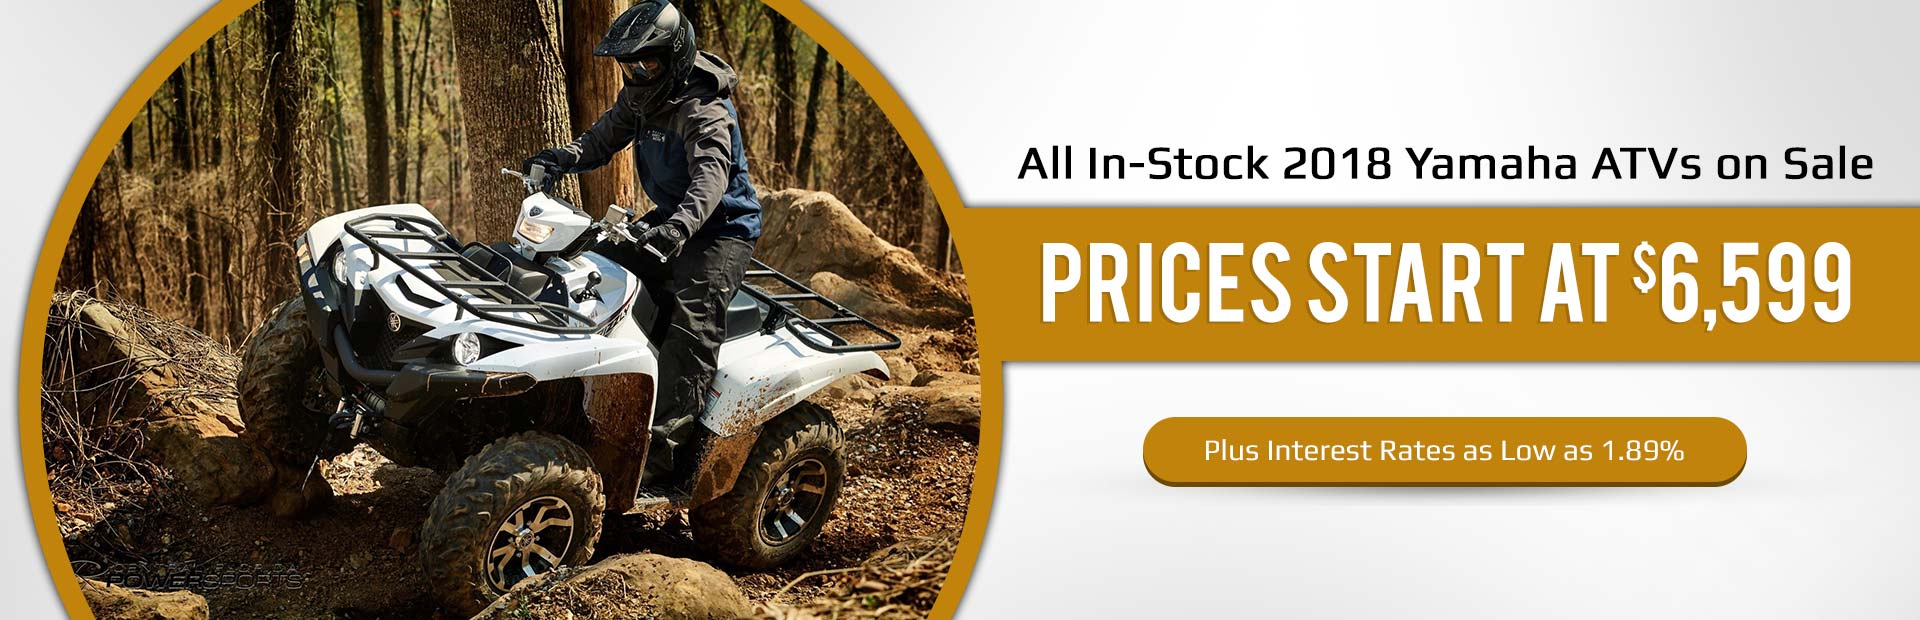 All in-stock 2018 Yamaha ATVs on sale! Prices start at $6,599, plus get interest rates as low as 1.89%!